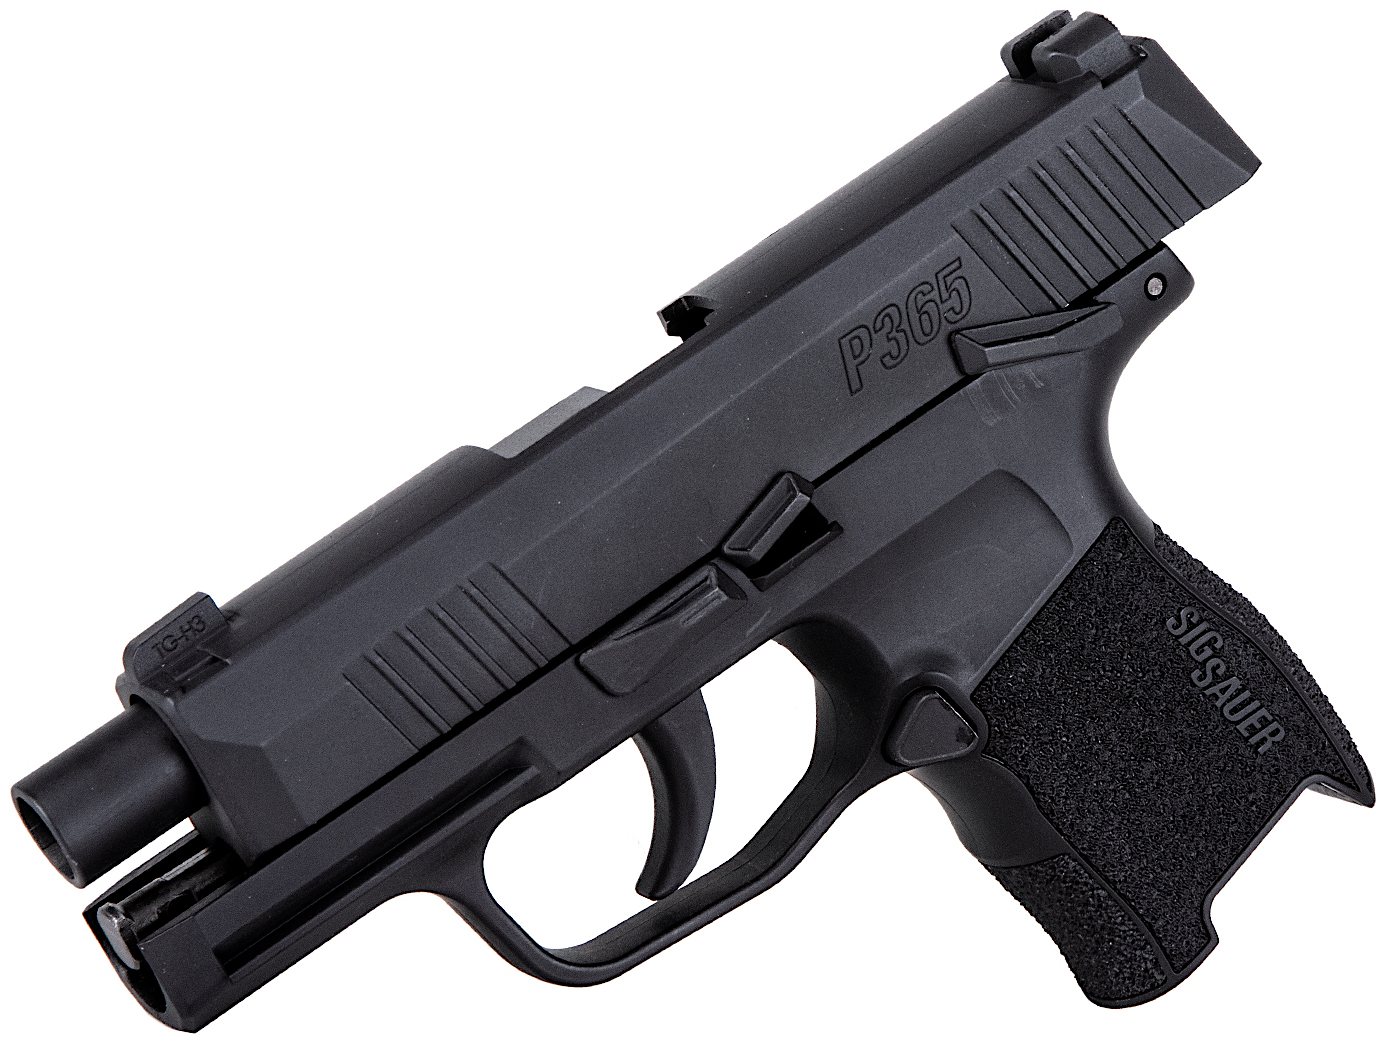 Sig Sauer P365 CO2 Blowback BB Pistol Open Left Side.jpg